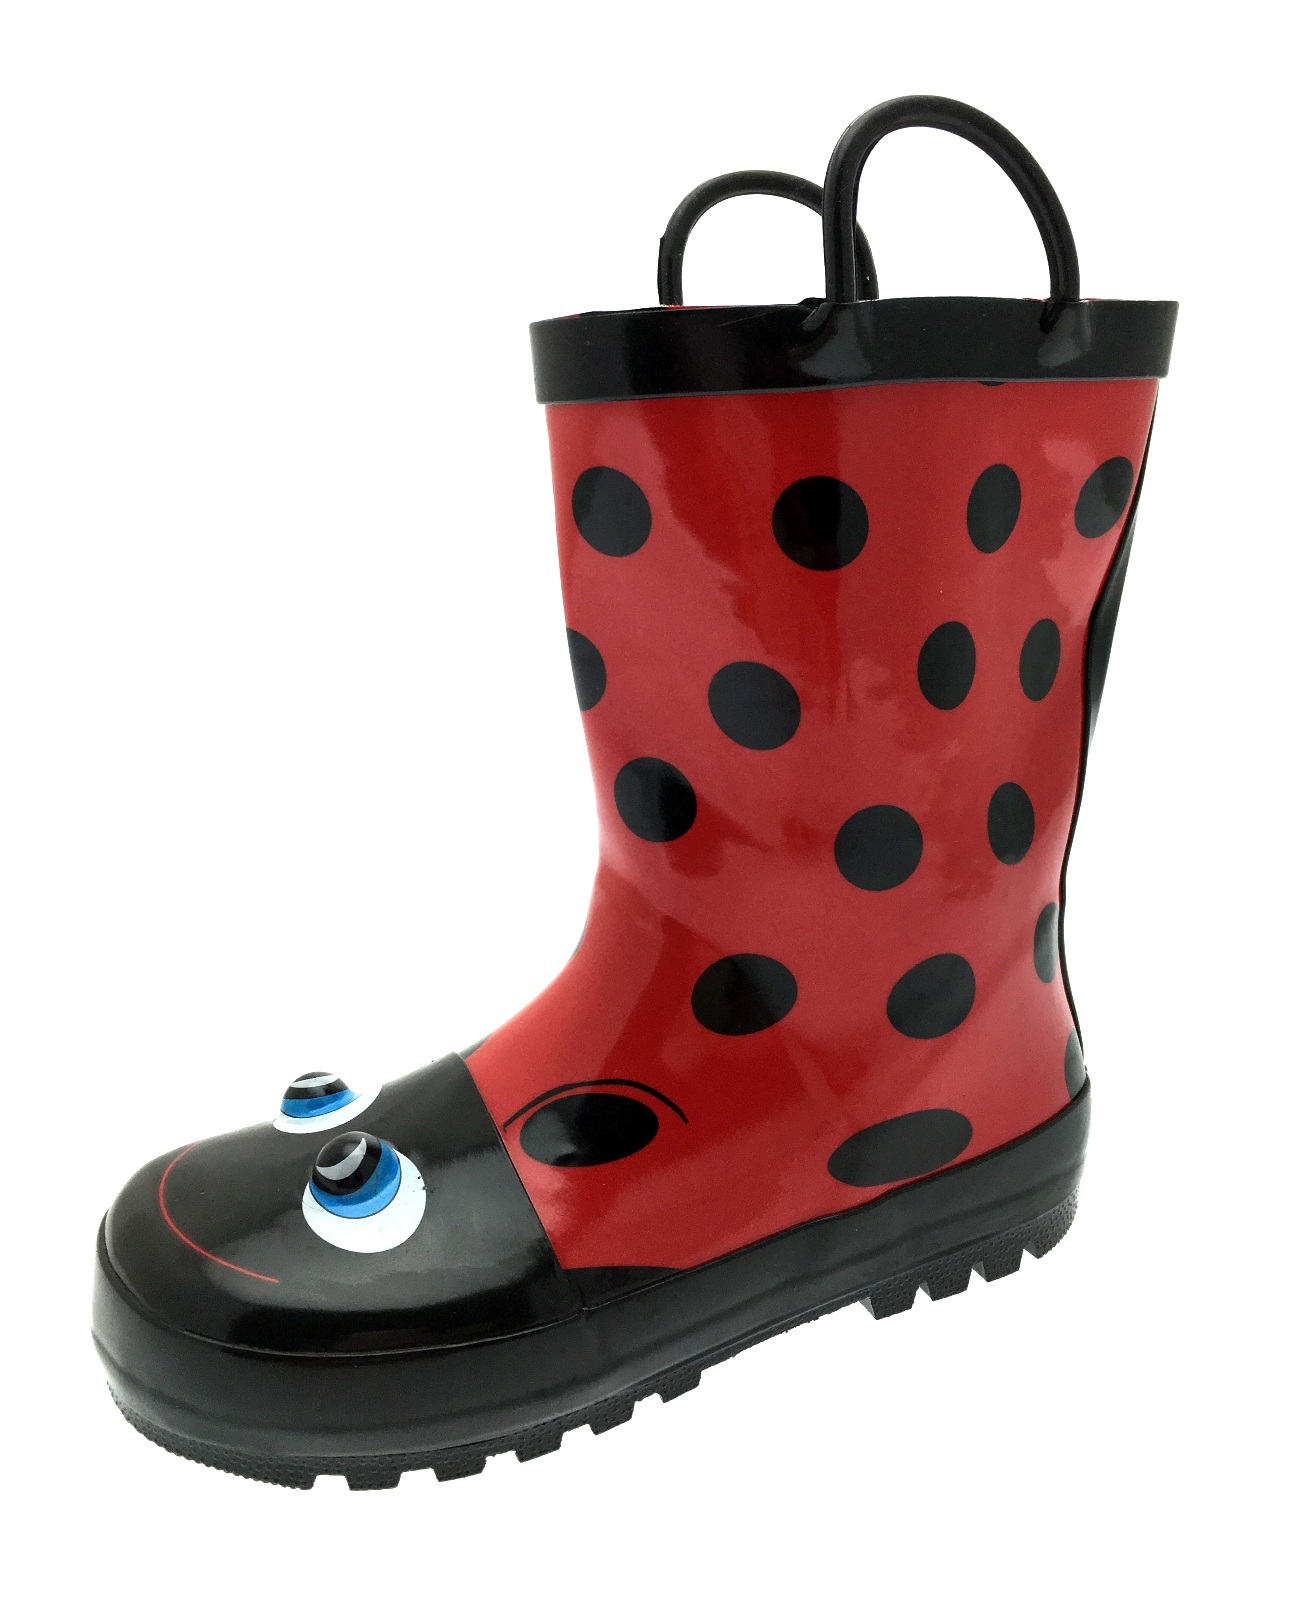 Over The Shoe Rain Boots For Kids